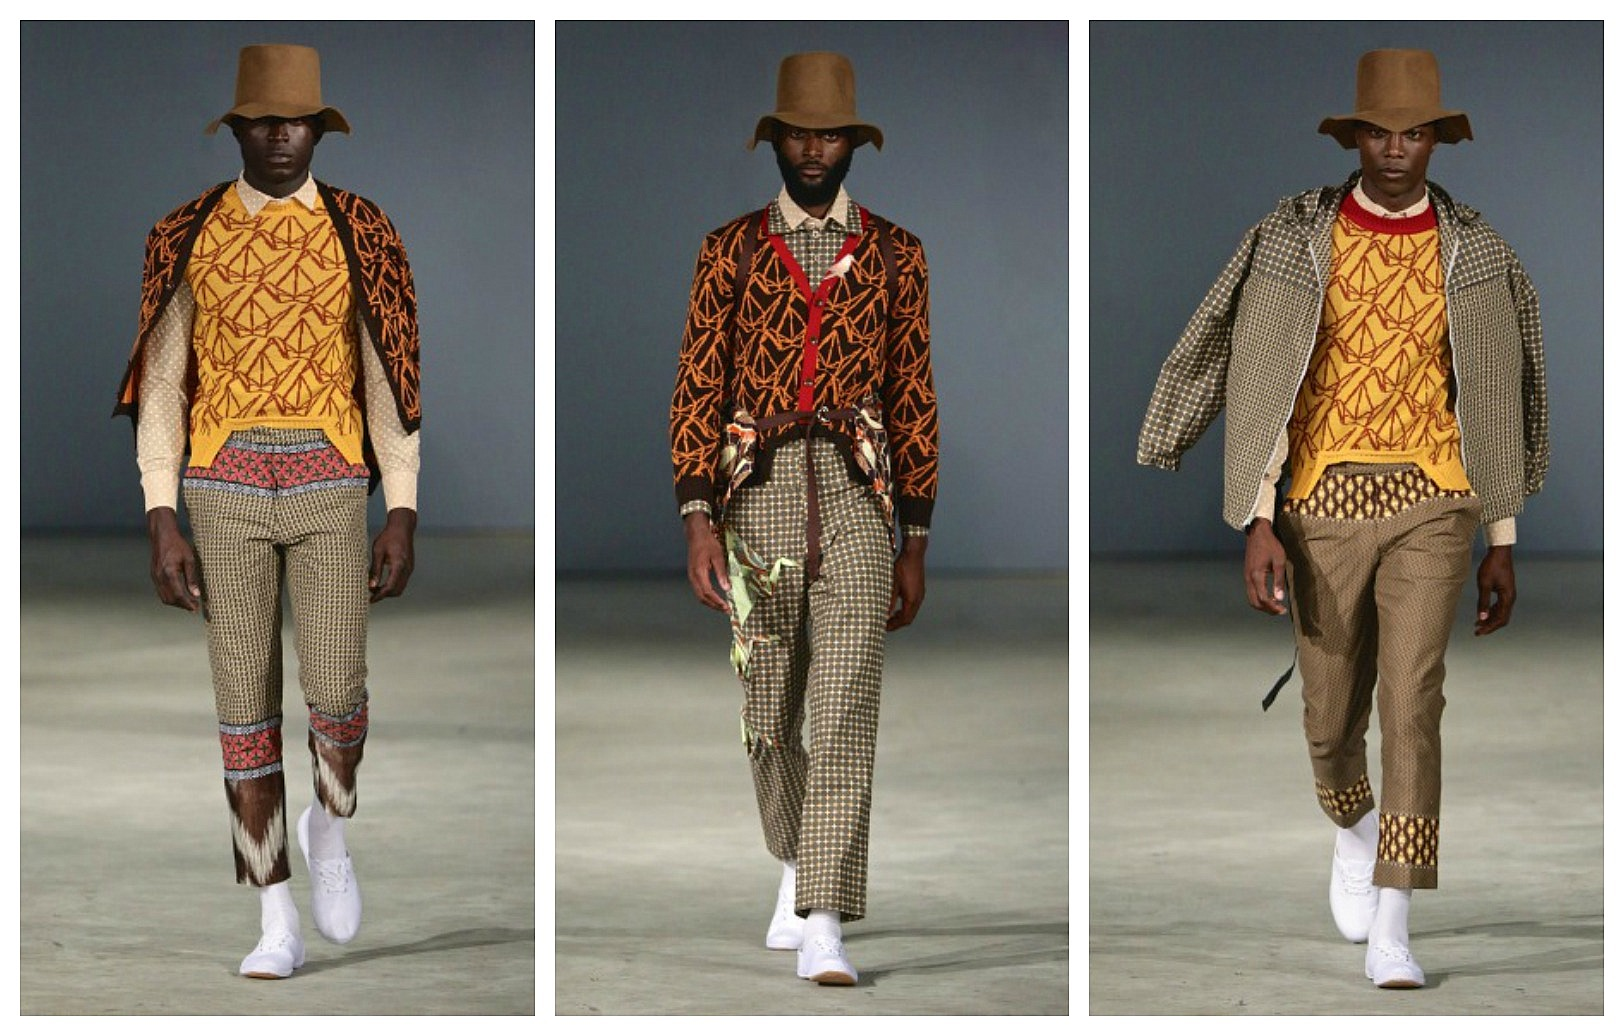 Local South African Fashion Online Fashion Trends in SA 19